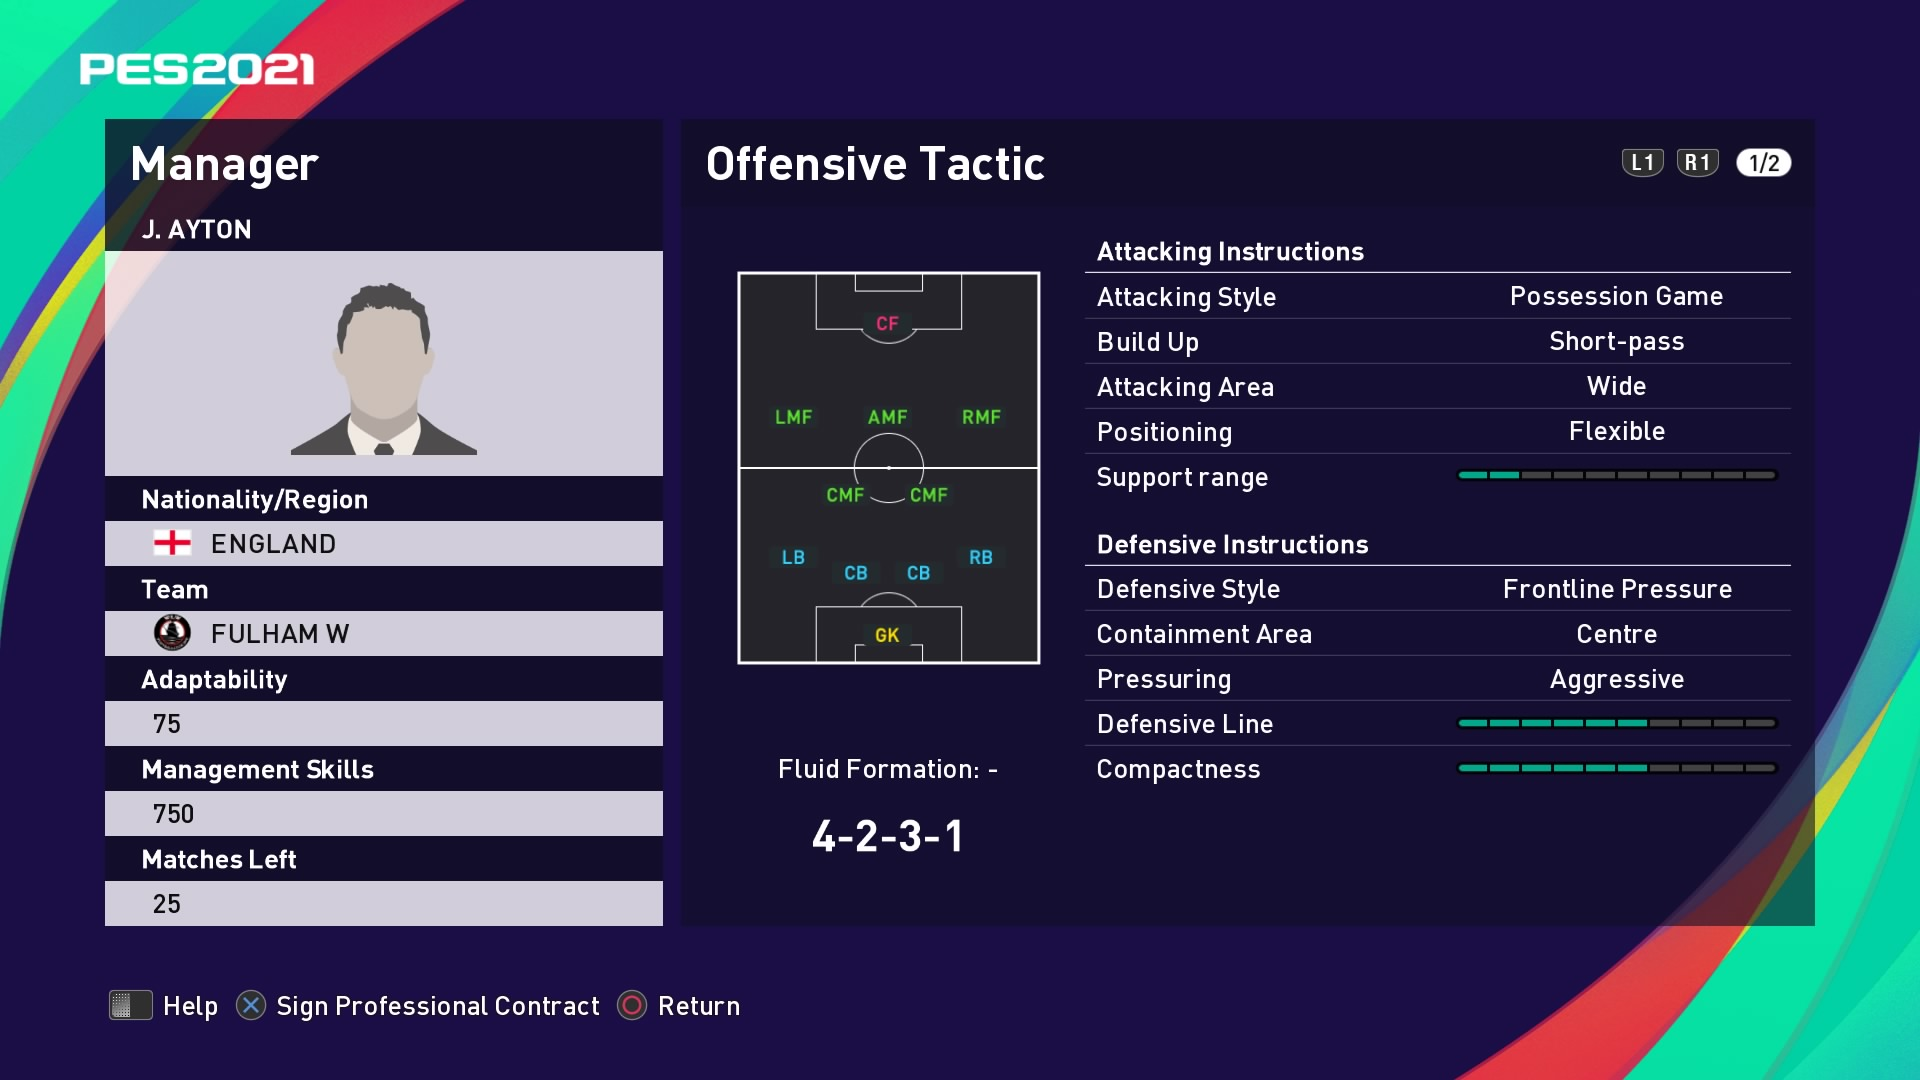 J. Ayton (Scott Parker) Offensive Tactic in PES 2021 myClub